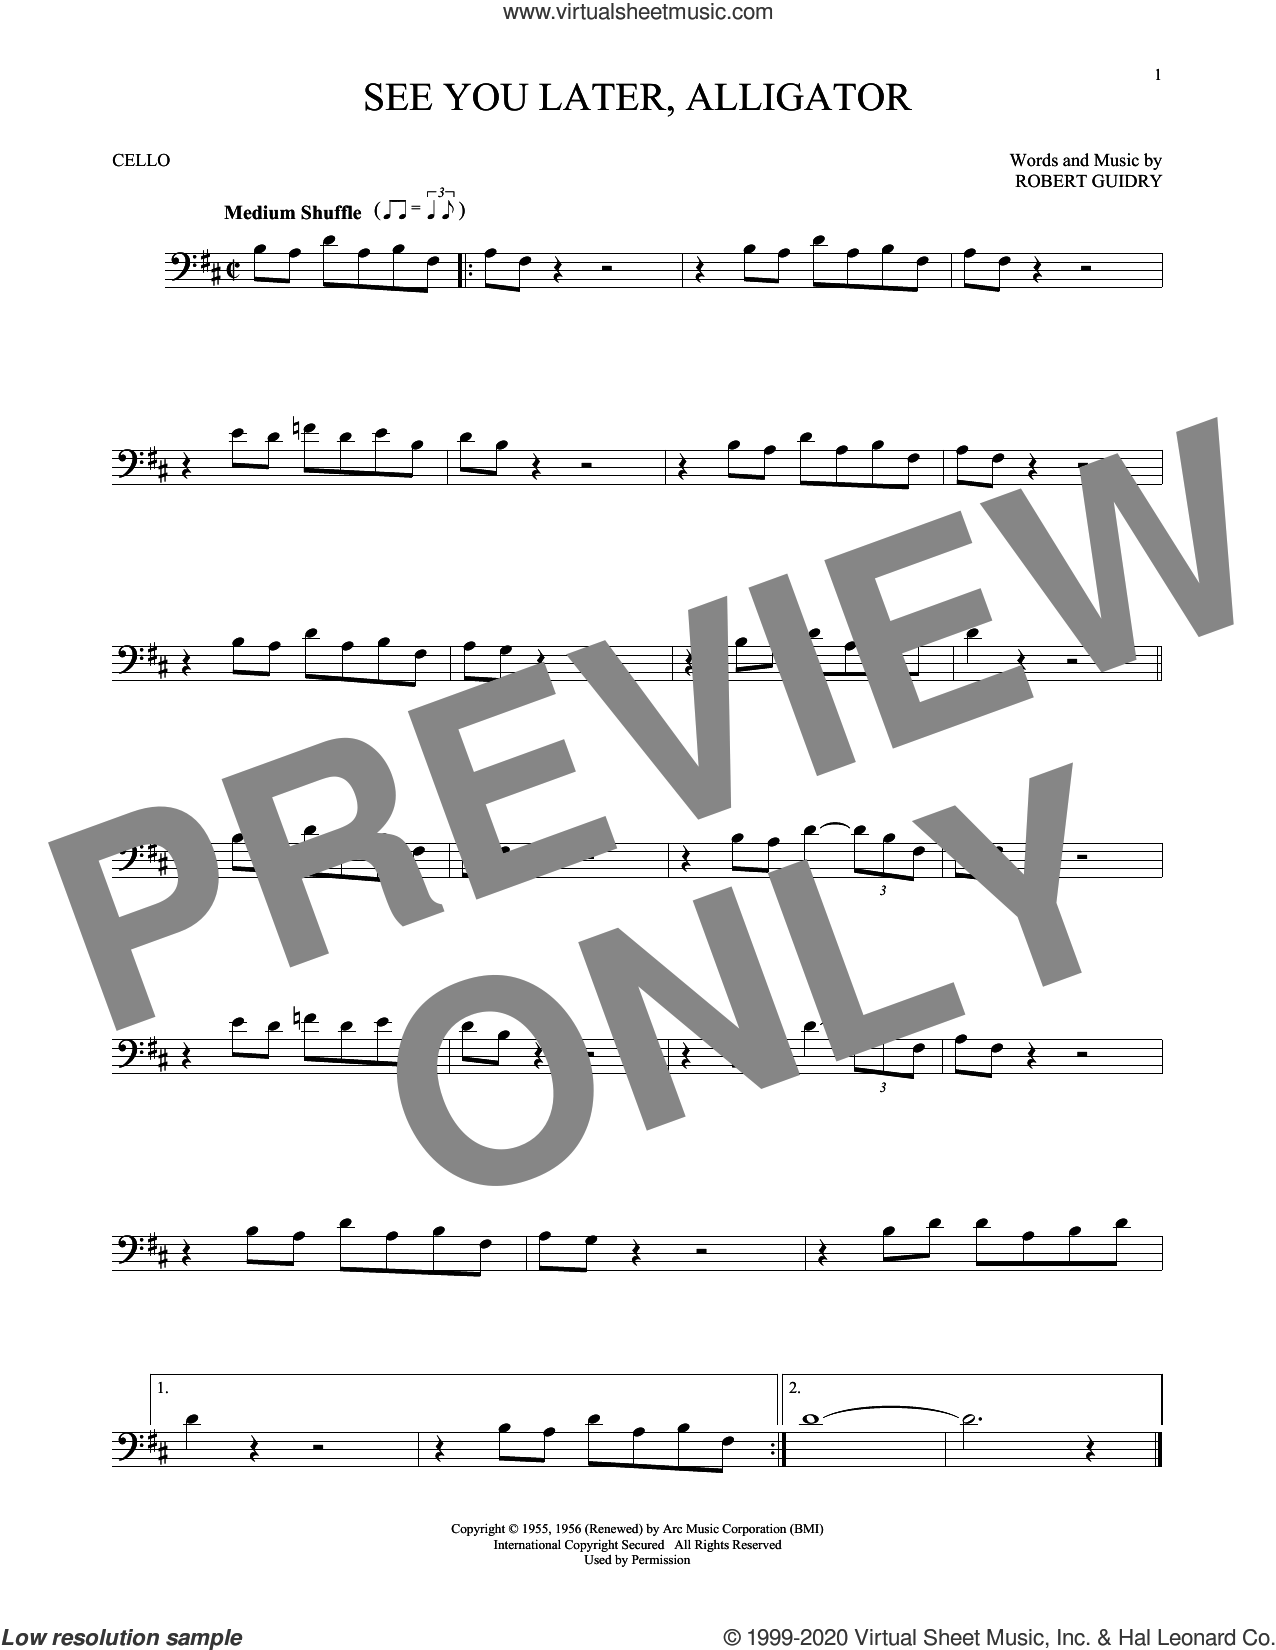 See You Later, Alligator sheet music for cello solo by Bill Haley & His Comets and Robert Guidry, intermediate skill level